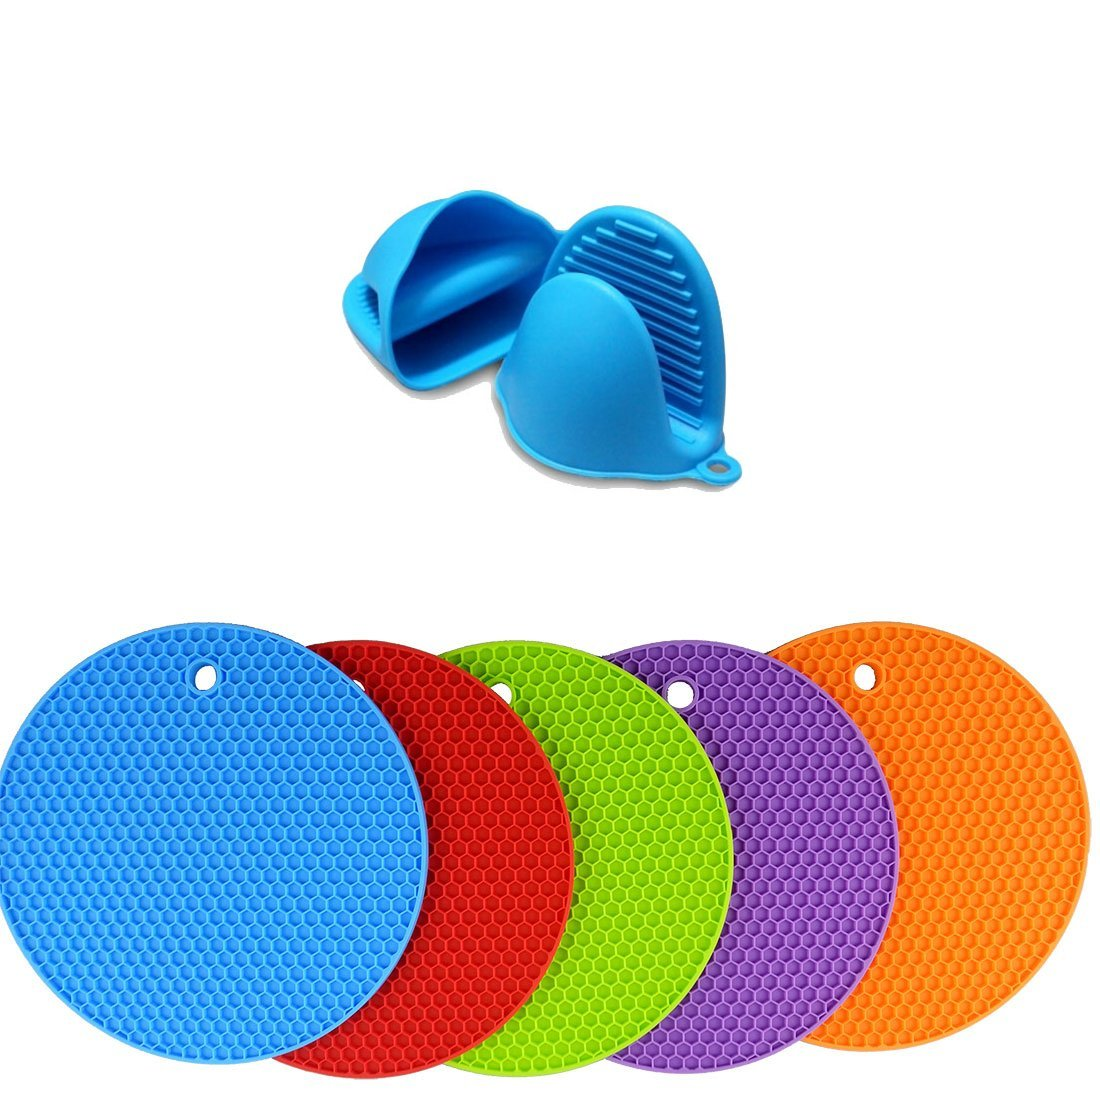 5 X Hot Pot Holders and Oven Mitts Silicone Trivet Set, Multipurpose Kitchen Utensils, Spoon Rest, Hot Pads, Tableware Insulation Trivets Pots and pans Mat, Non-slip, Heat Resistant, Flexible.